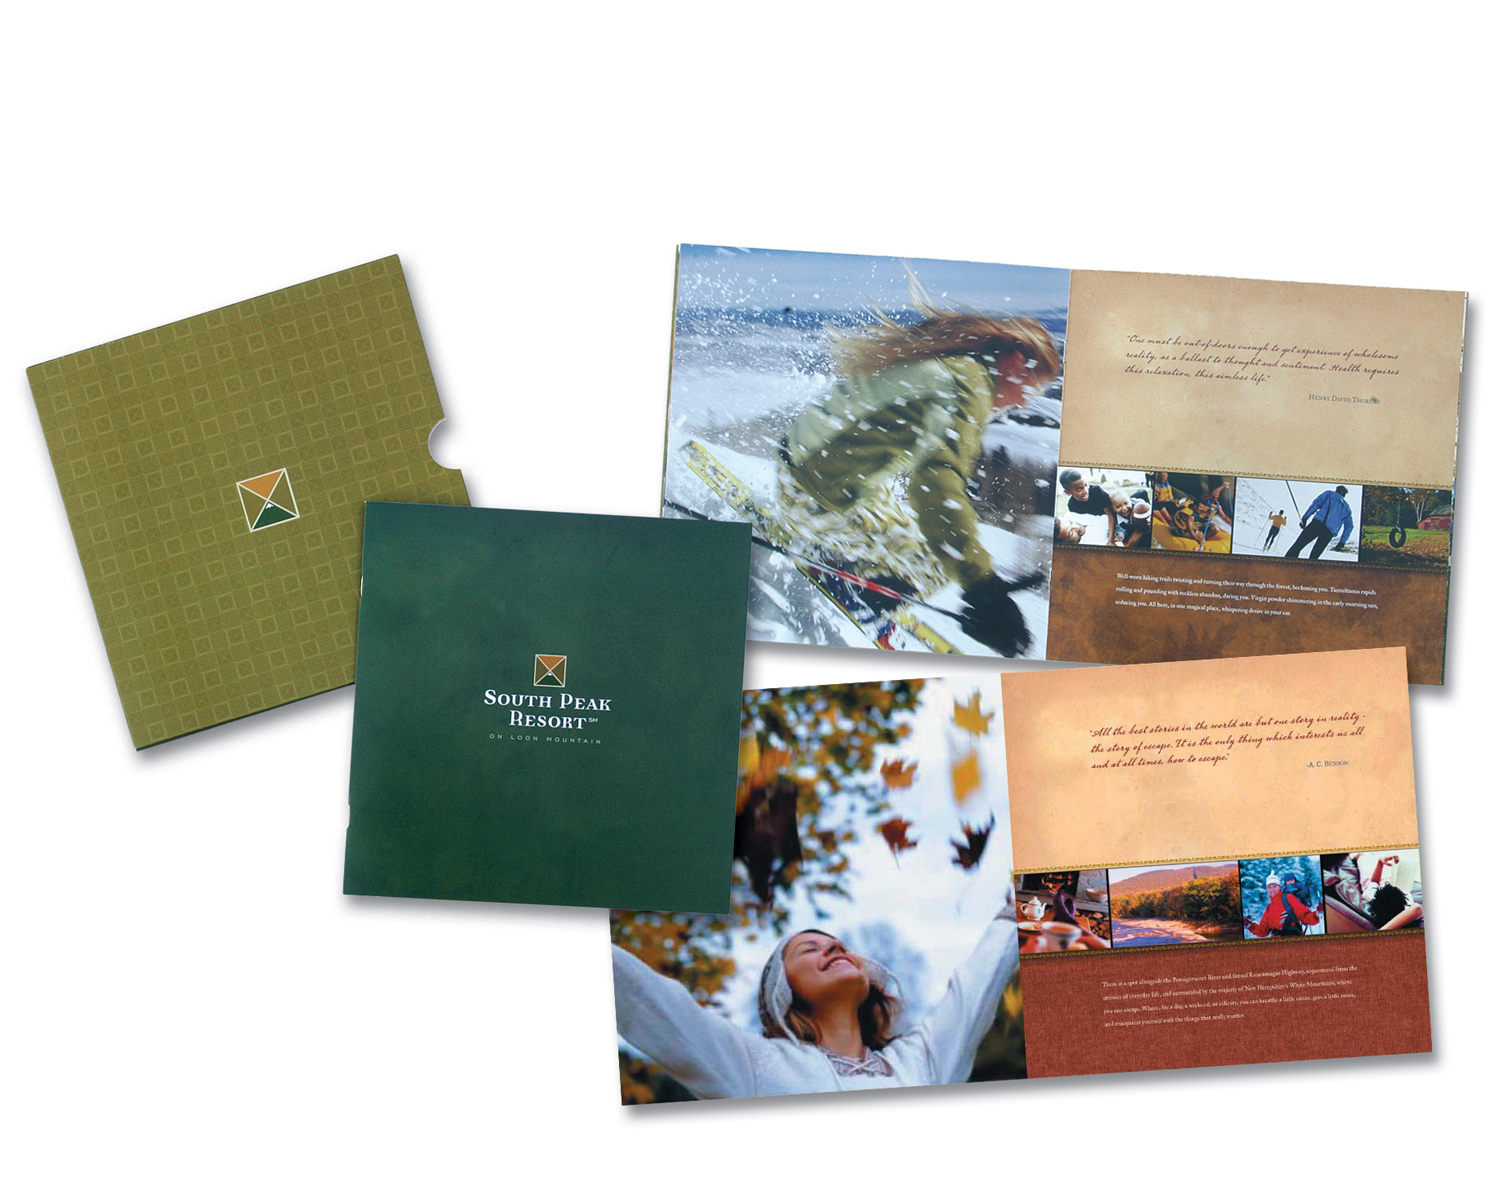 Complete Branding,Marketing, and Advertising for South Peak Resort at Loon Mountain, New Hampshire